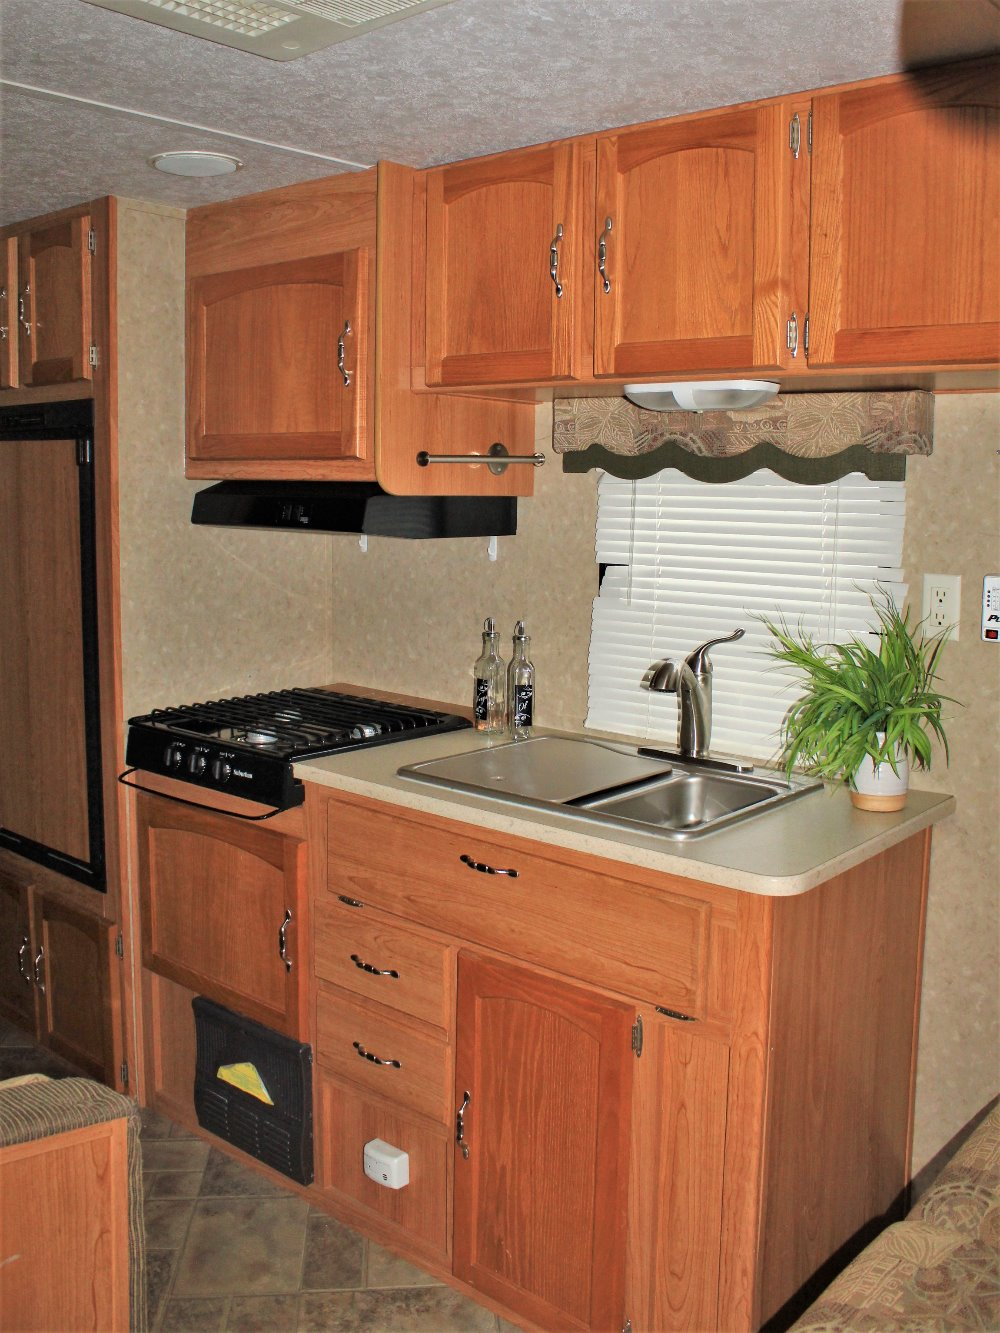 2008 Forest River 27fq